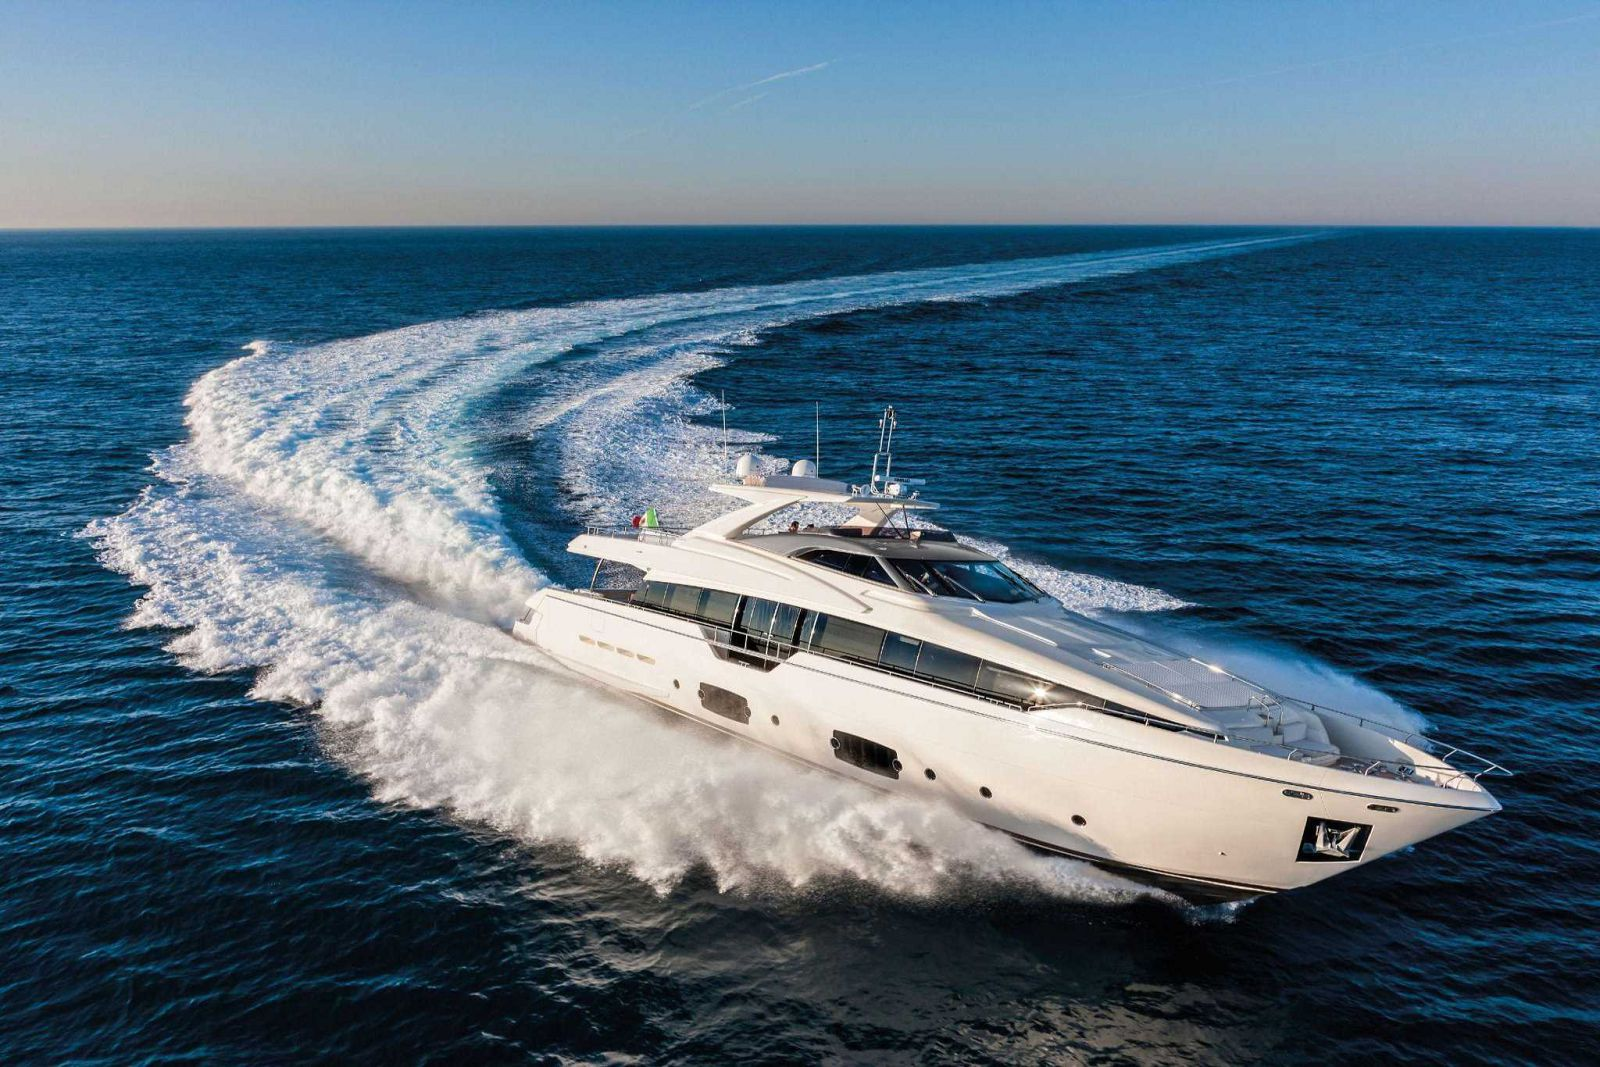 Ferretti Yachts 960 Exterior - New Luxury Yacht for Sale >